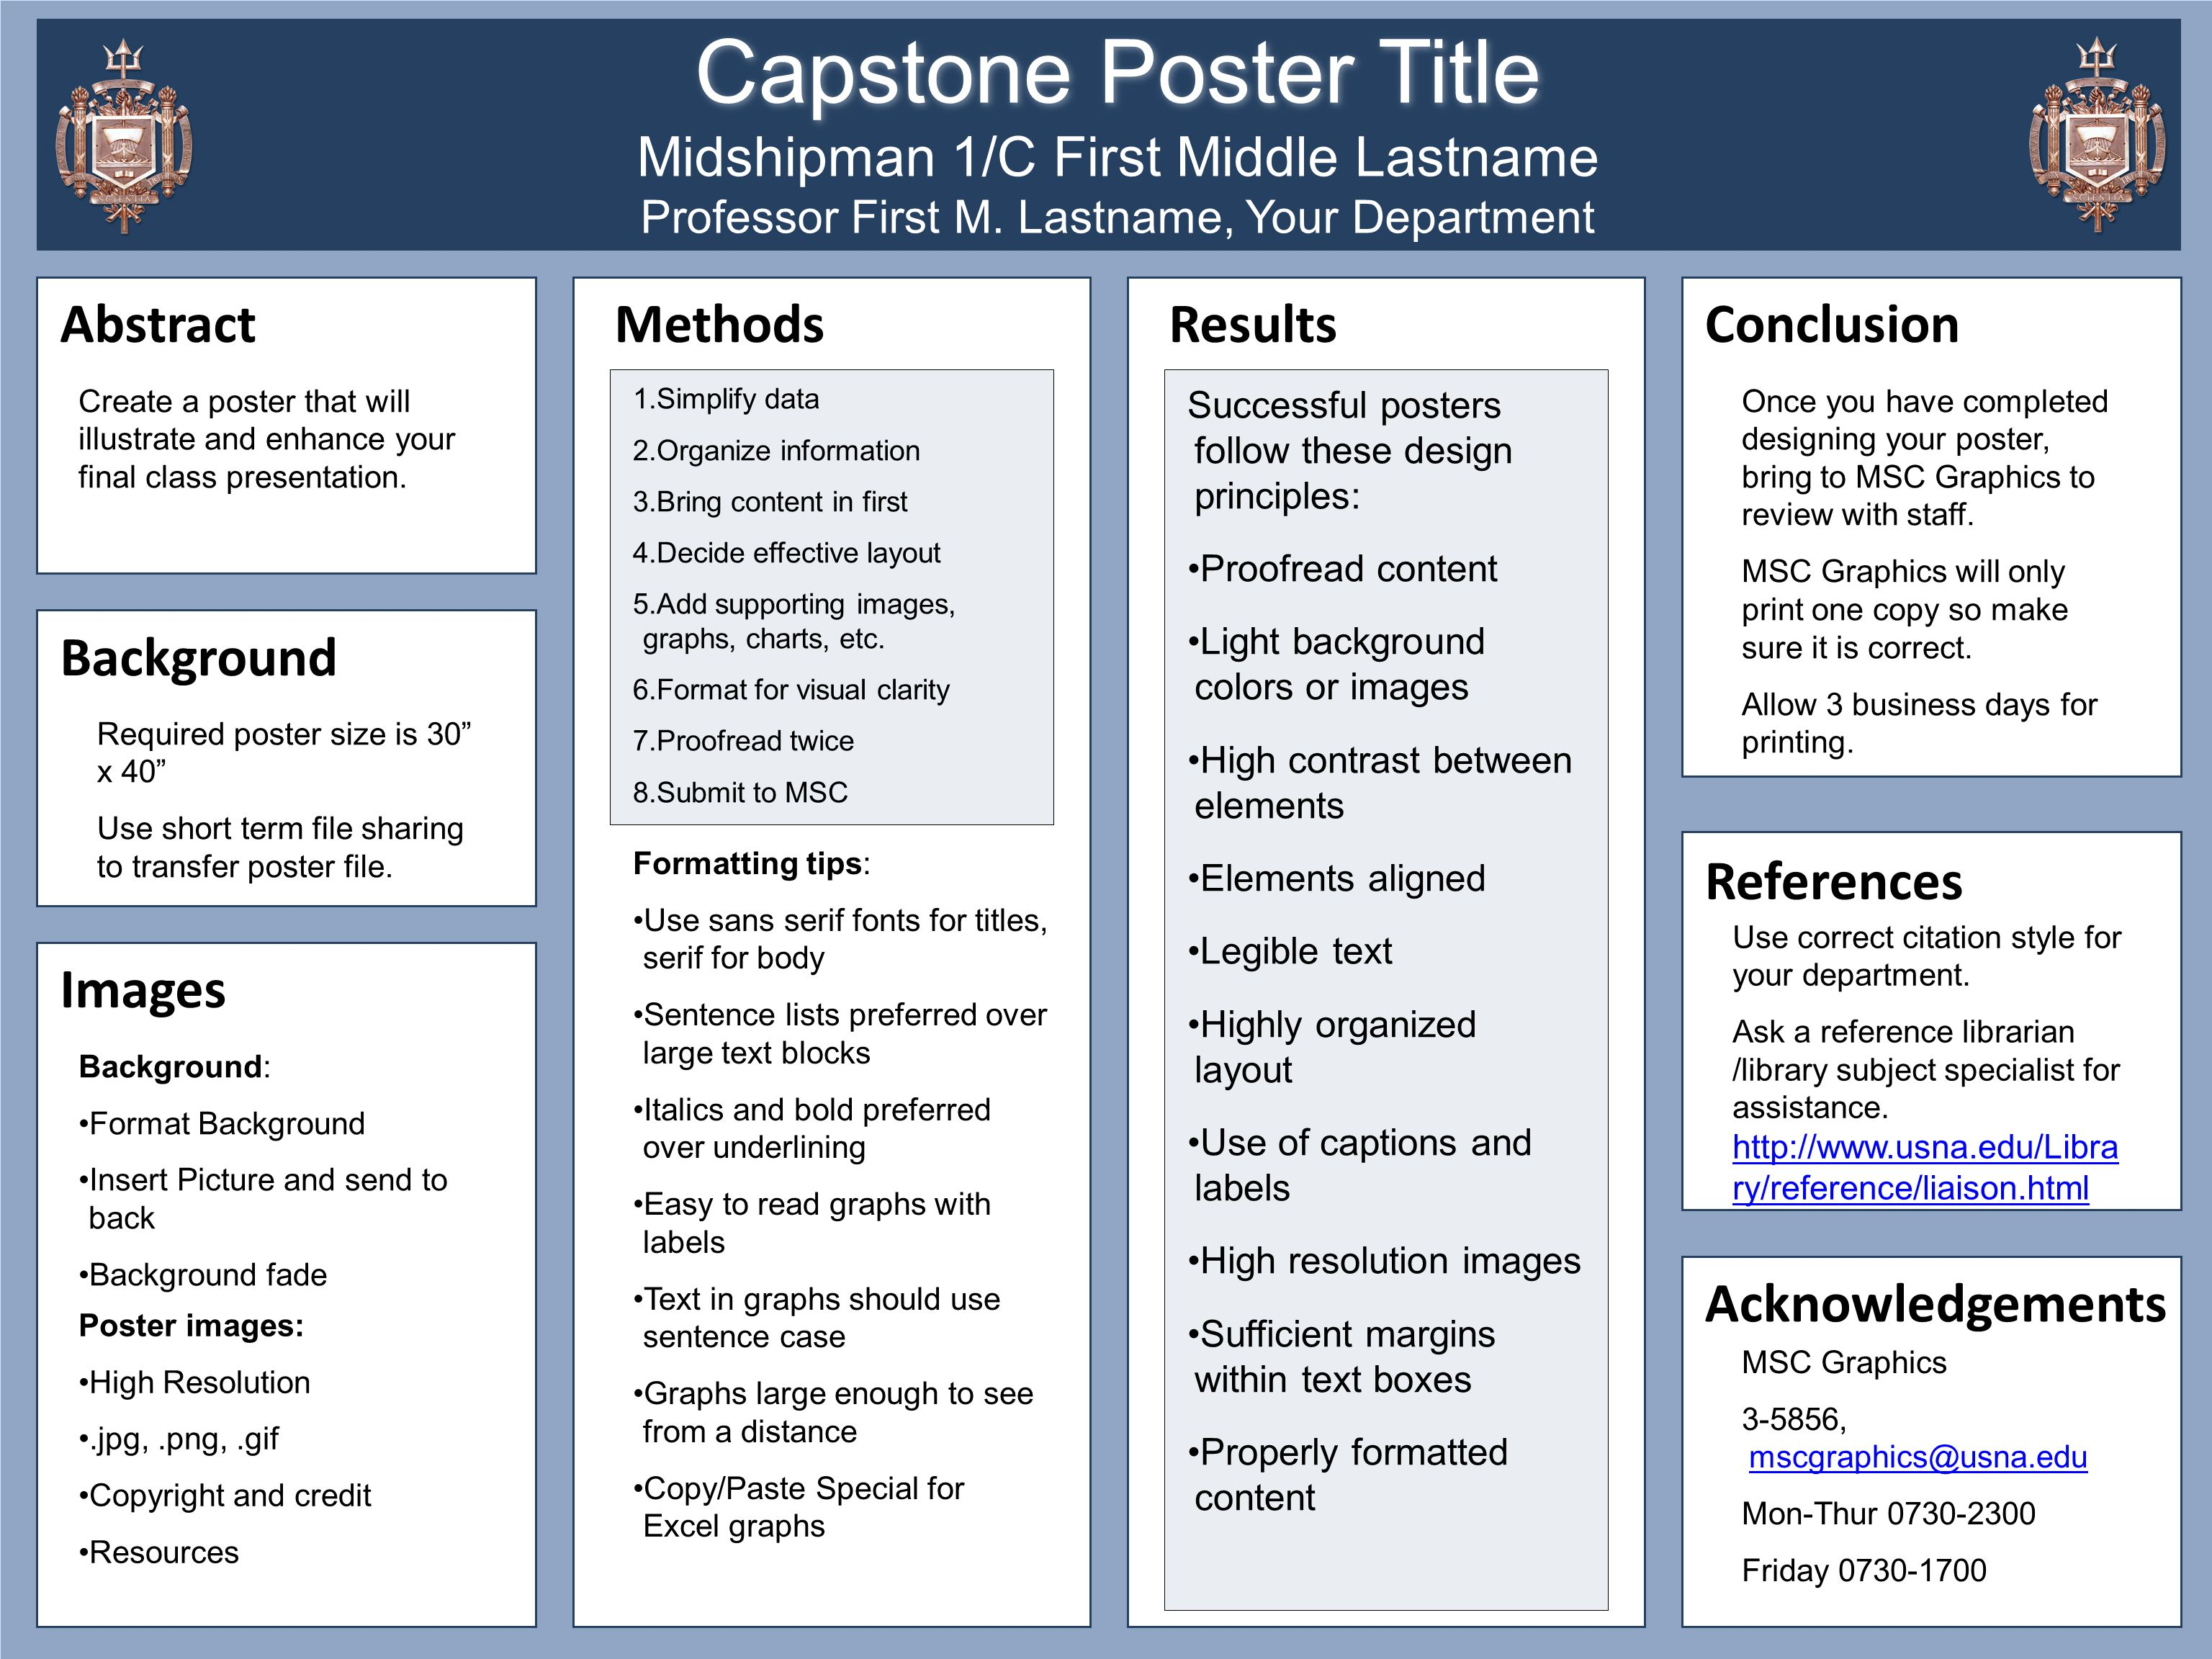 Capstone Poster Title Midshipman 1/C First Middle Lastname Professor First M. Lastname, Your Department